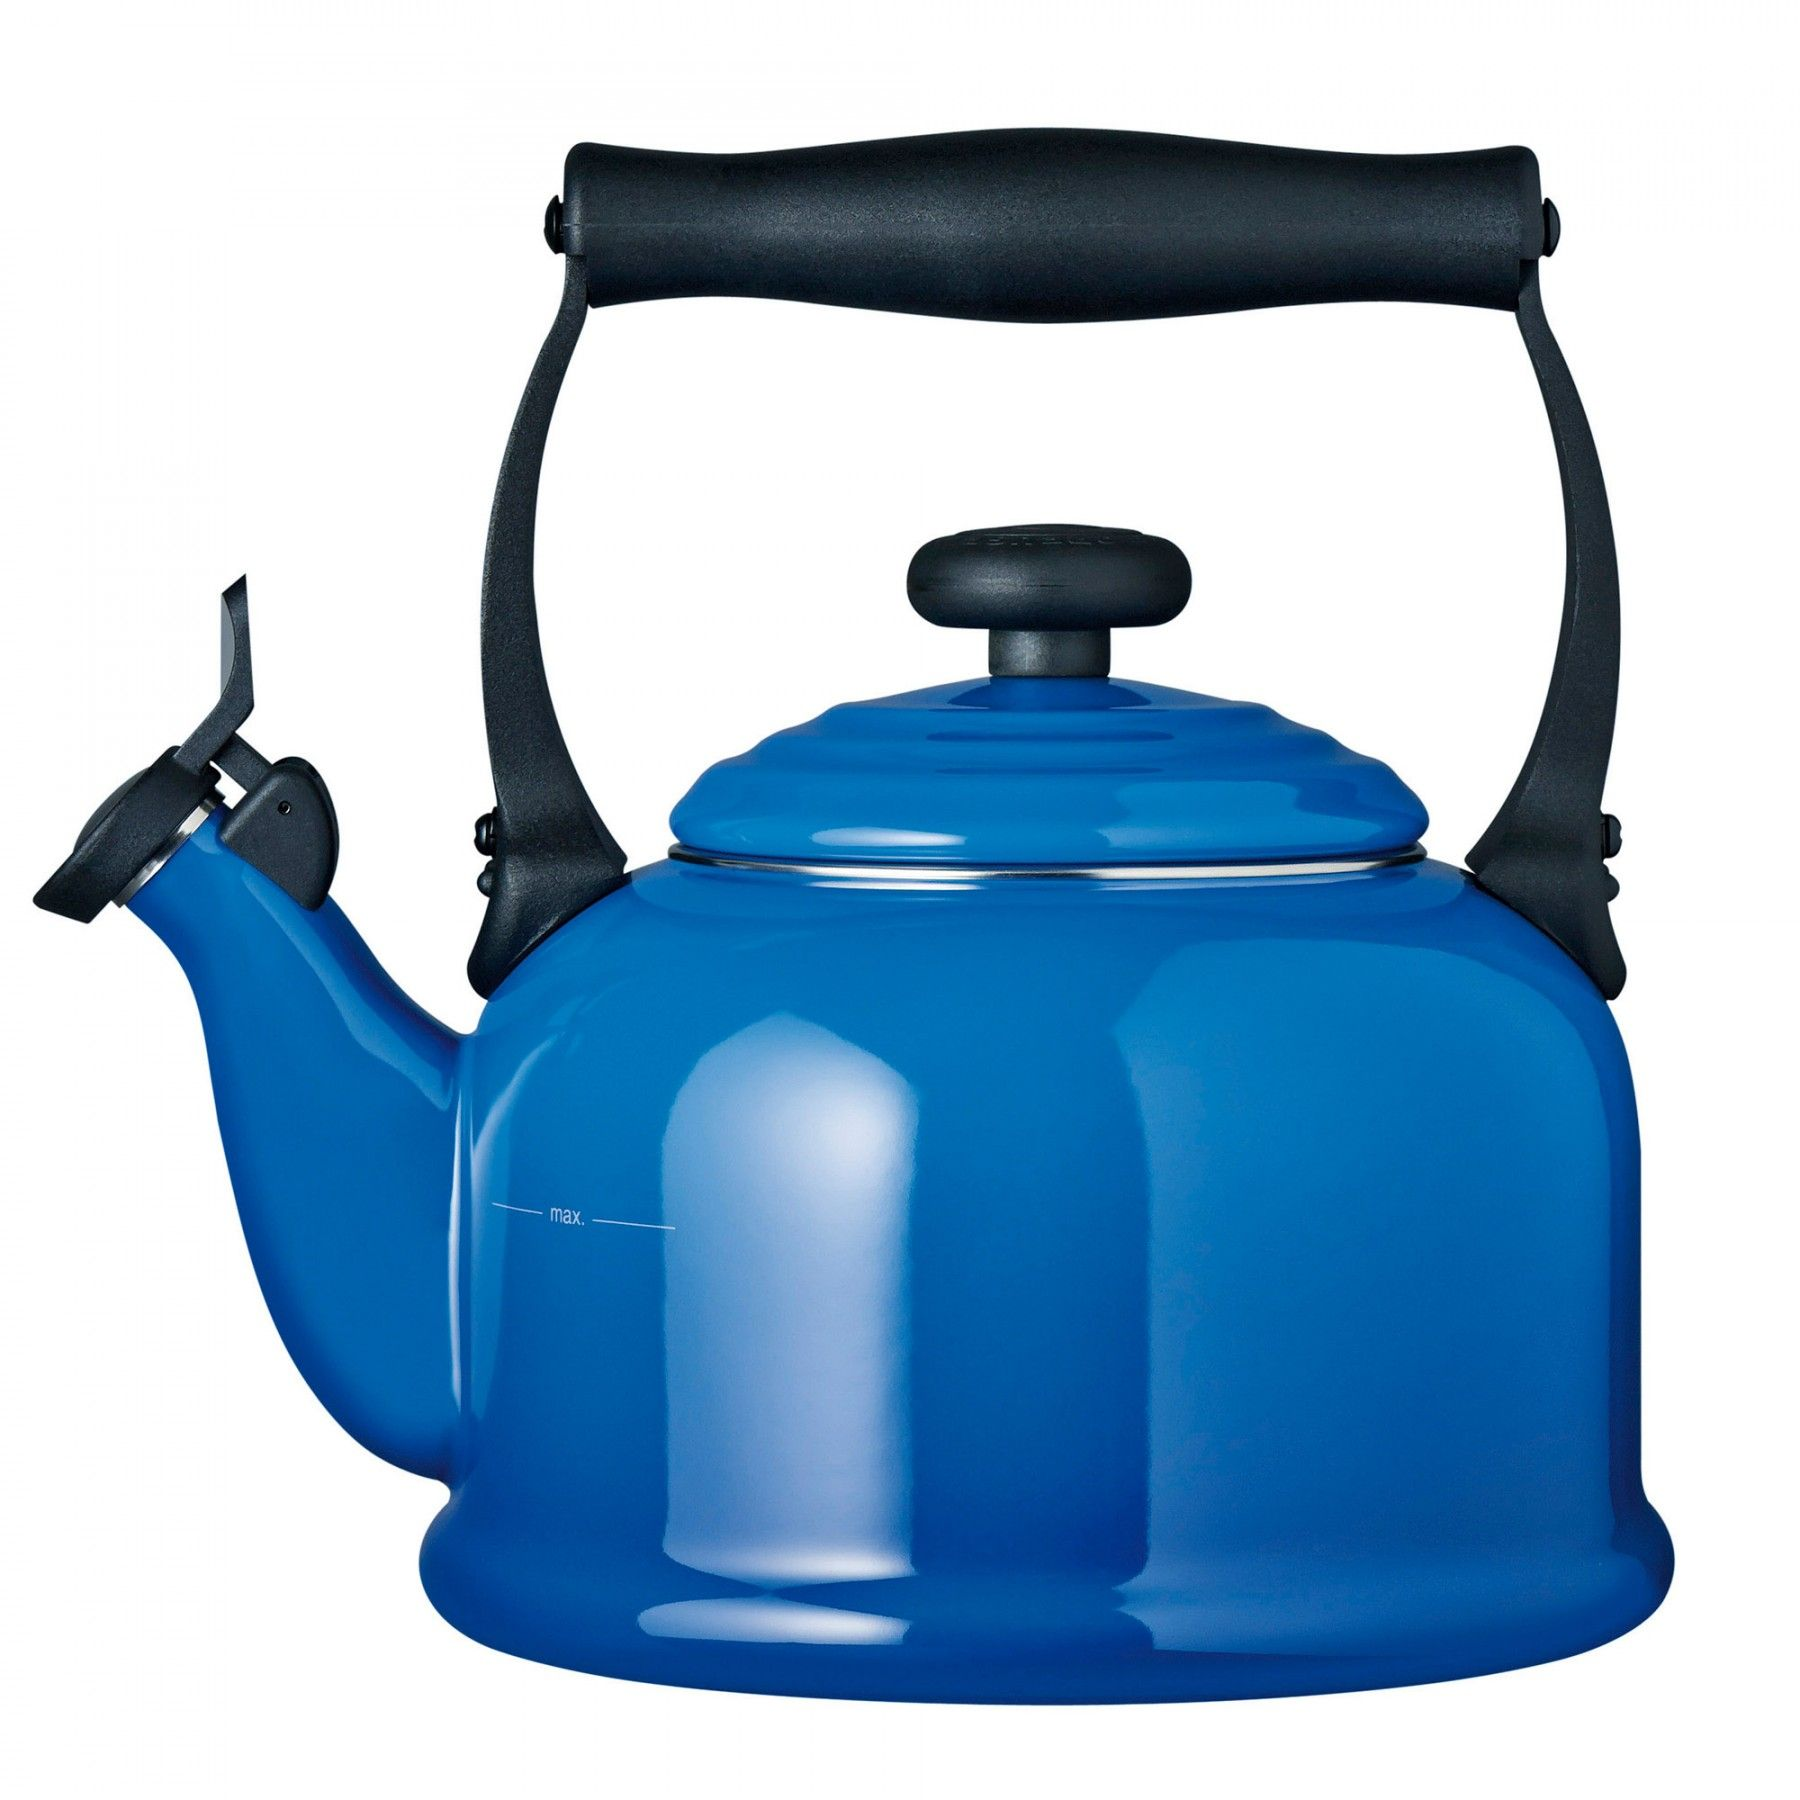 Traditional Kettle Marseille Blue Kettle, Le creuset